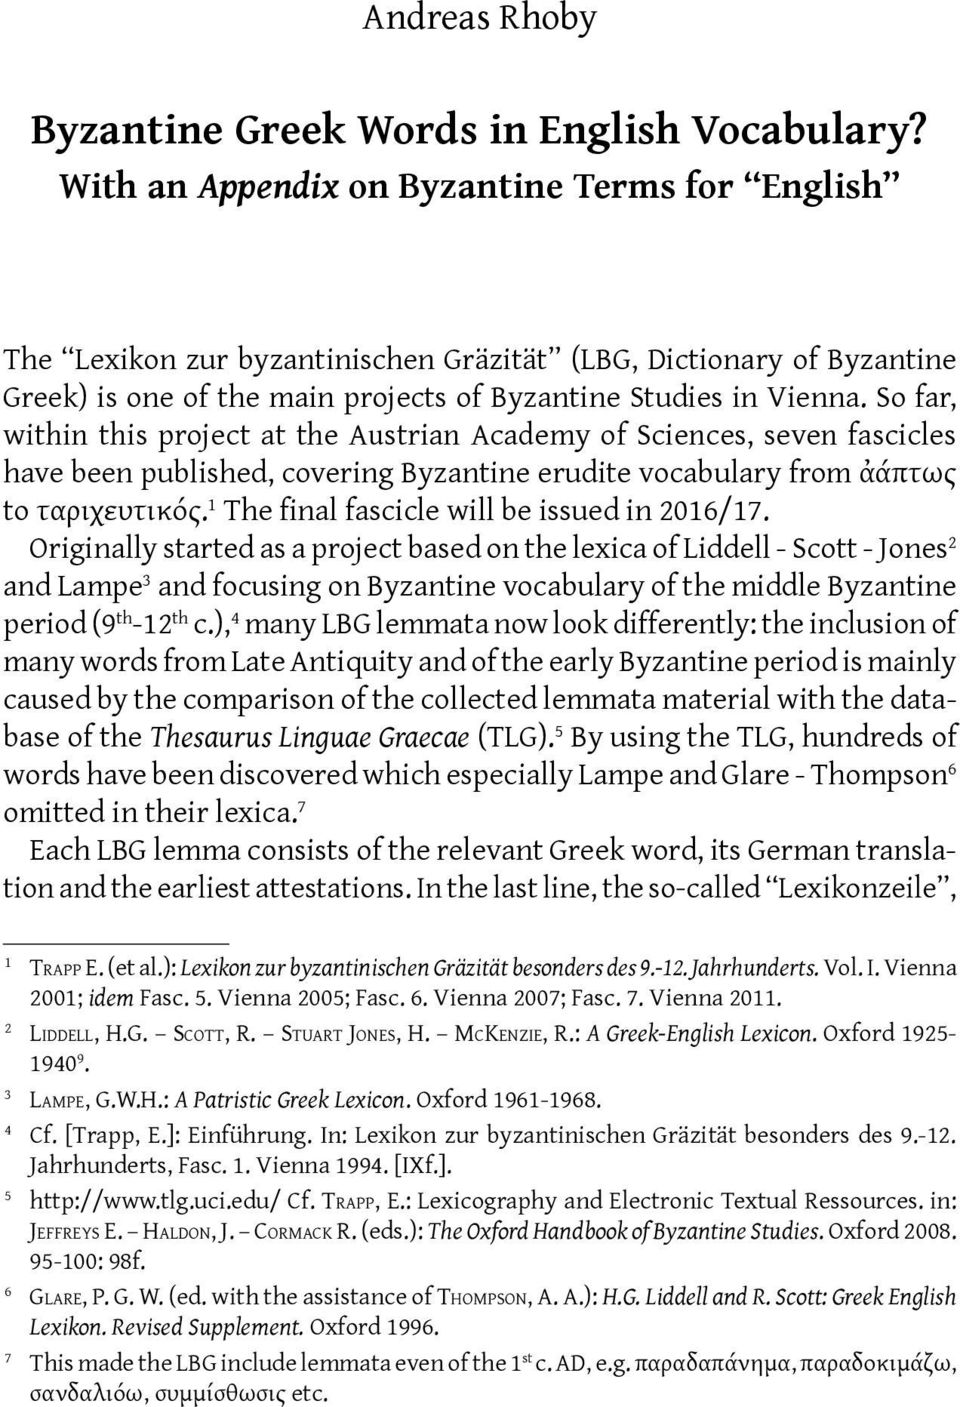 So far, within this project at the Austrian Academy of Sciences, seven fascicles have been published, covering Byzantine erudite vocabulary from ἀάπτως to ταριχευτικός.